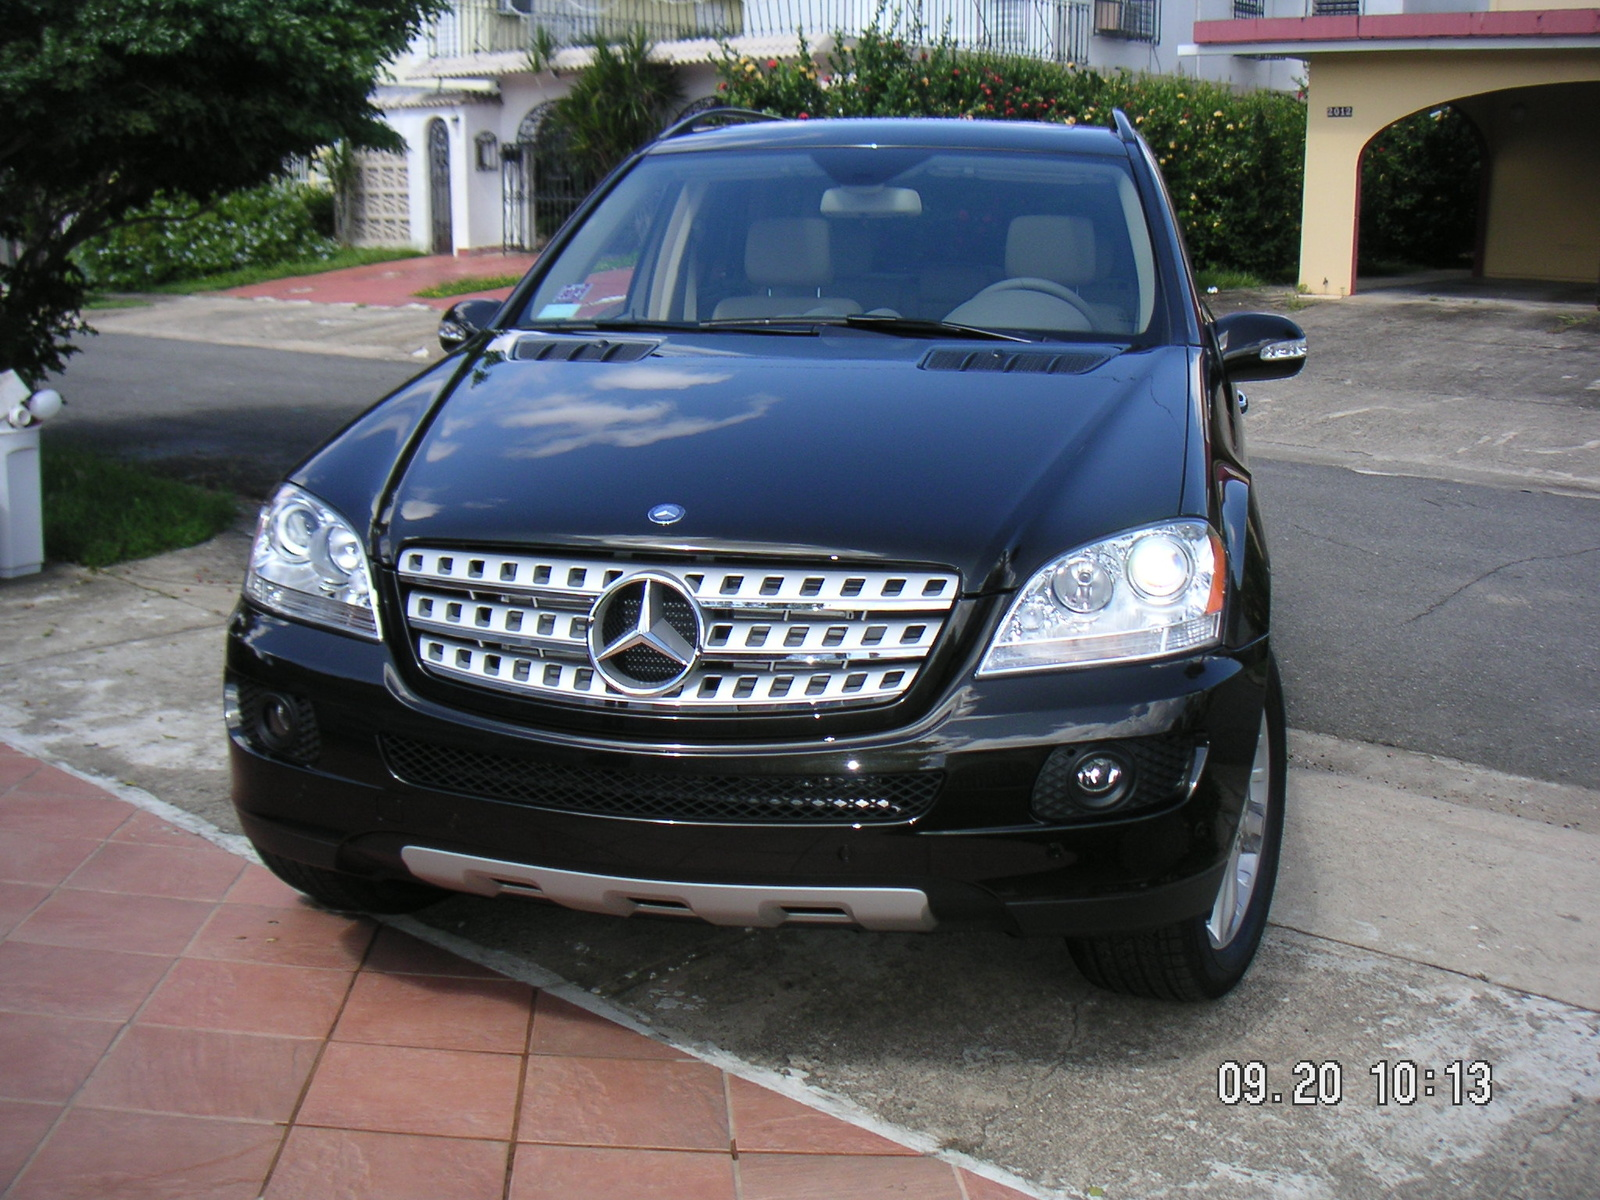 2008 mercedes benz m class pictures cargurus for Mercedes benz ml 320 cdi